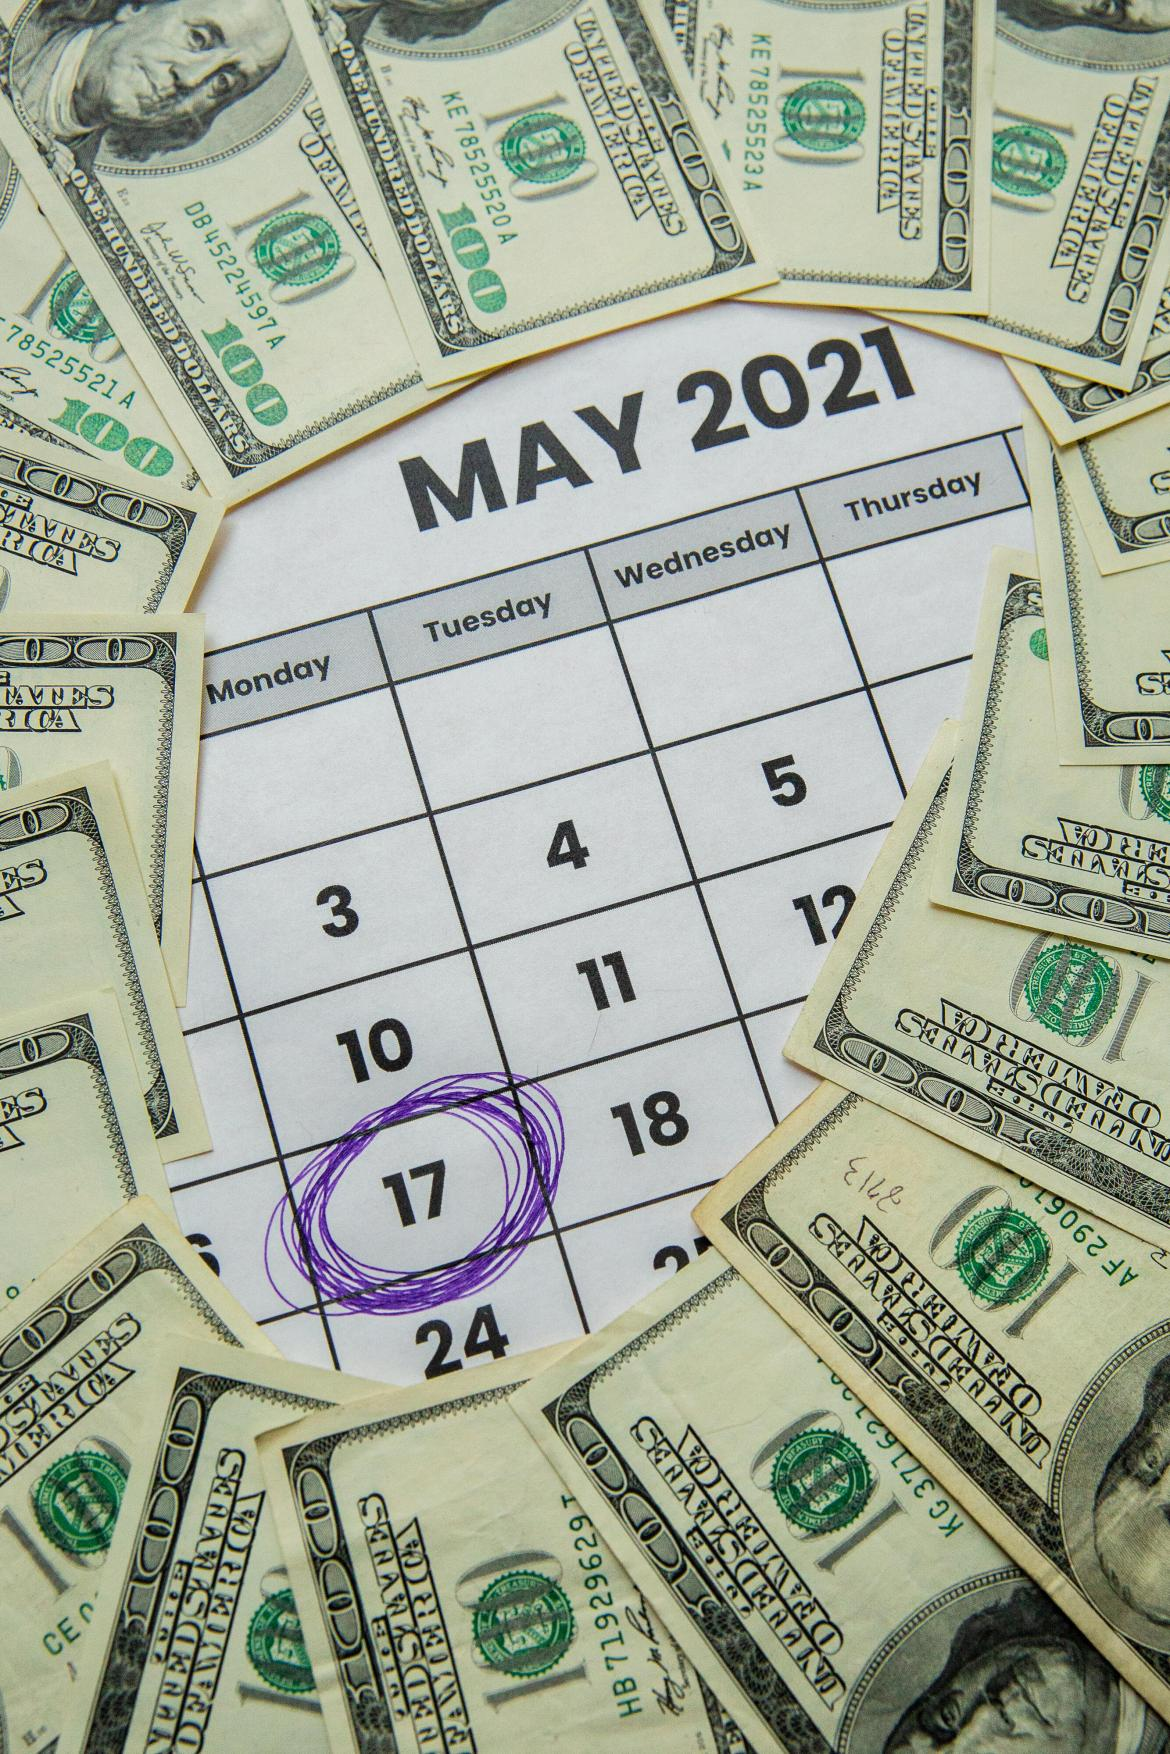 015-may-17-tax-day-usa-2021-cnet